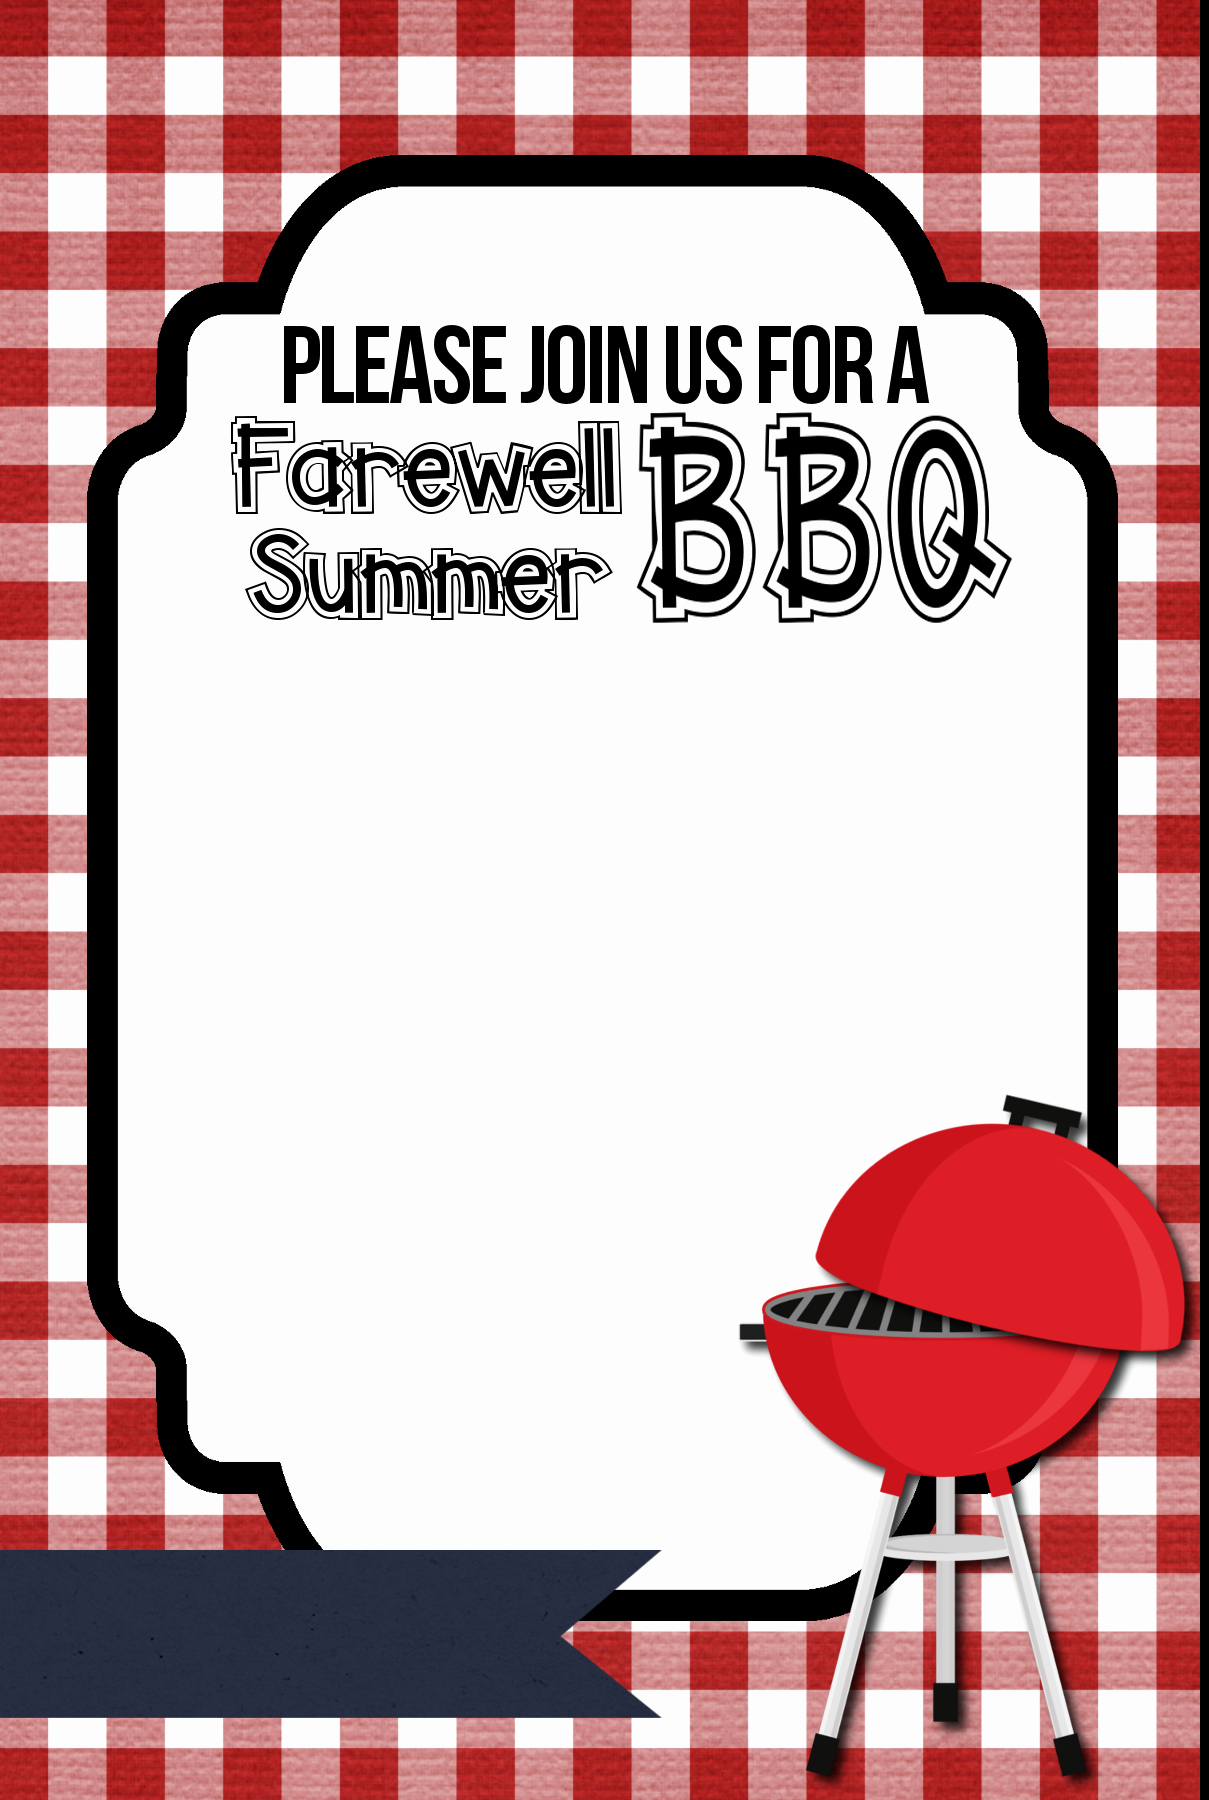 Barbecue Invitation Free Template Beautiful Bbq Invitation Printable organize and Decorate Everything